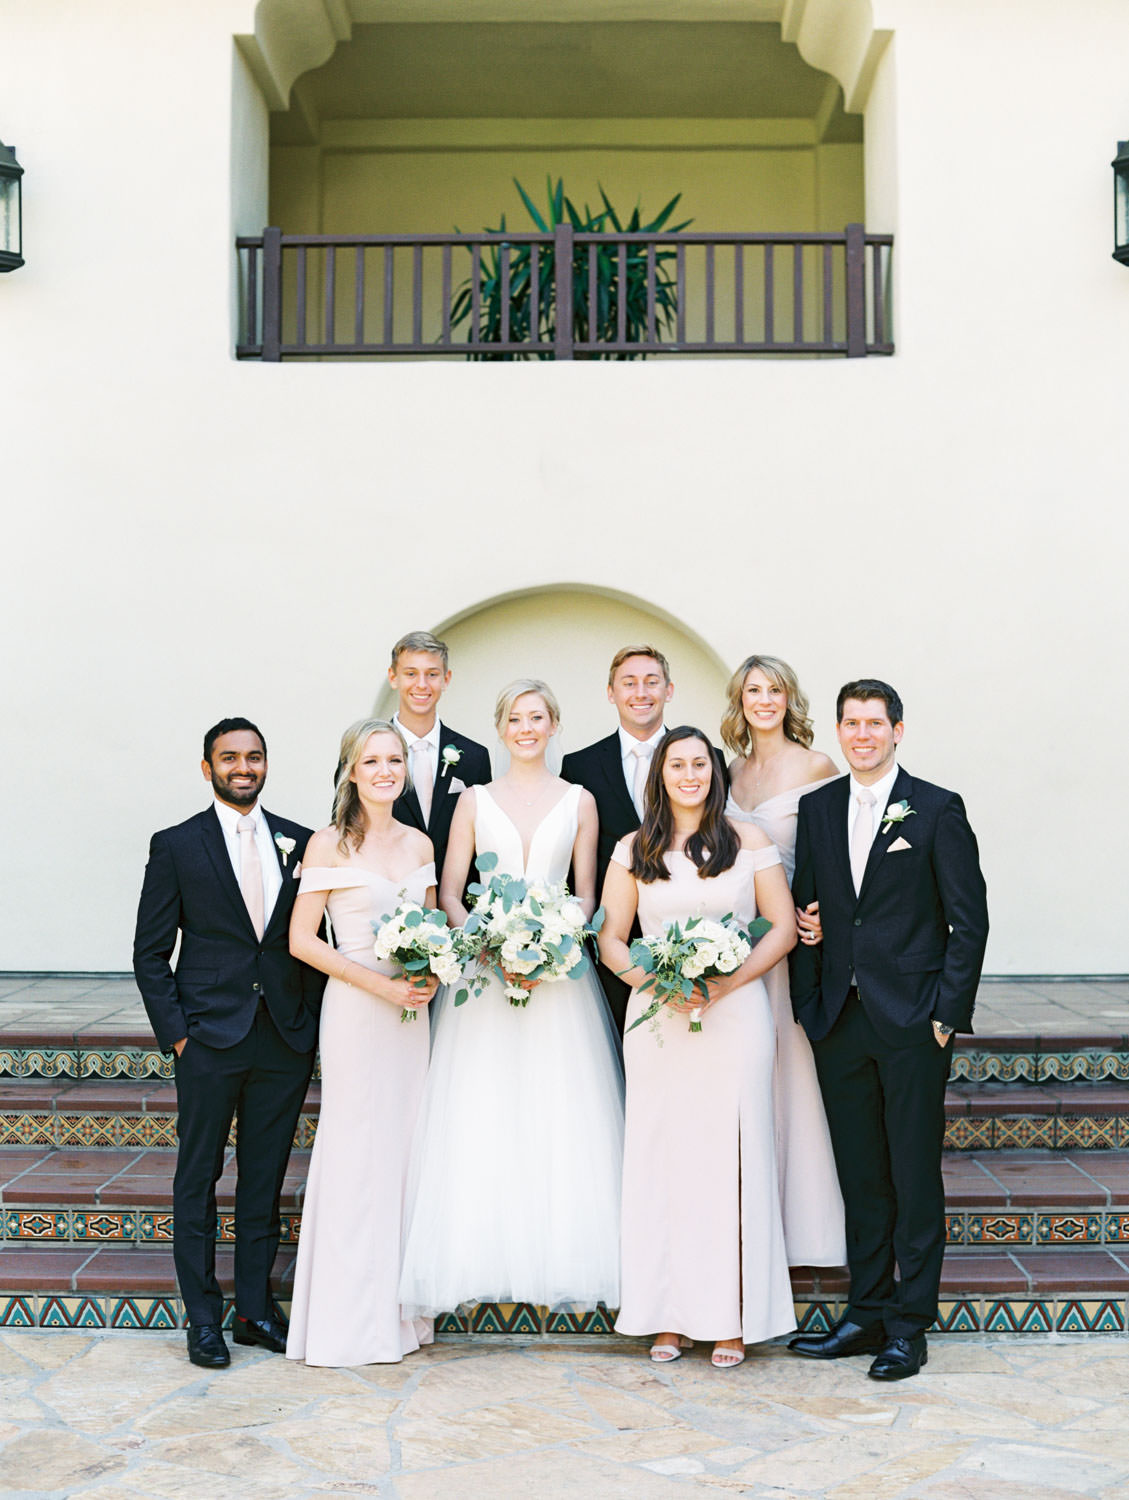 Bridal party portrait with black suits and blush gowns. Groom in black suit and blush tie walking with bride in Stella York gown with dahlia and rose ivory bouquet with silver dollar eucalyptus. La Jolla wedding shot on film by Cavin Elizabeth Photography